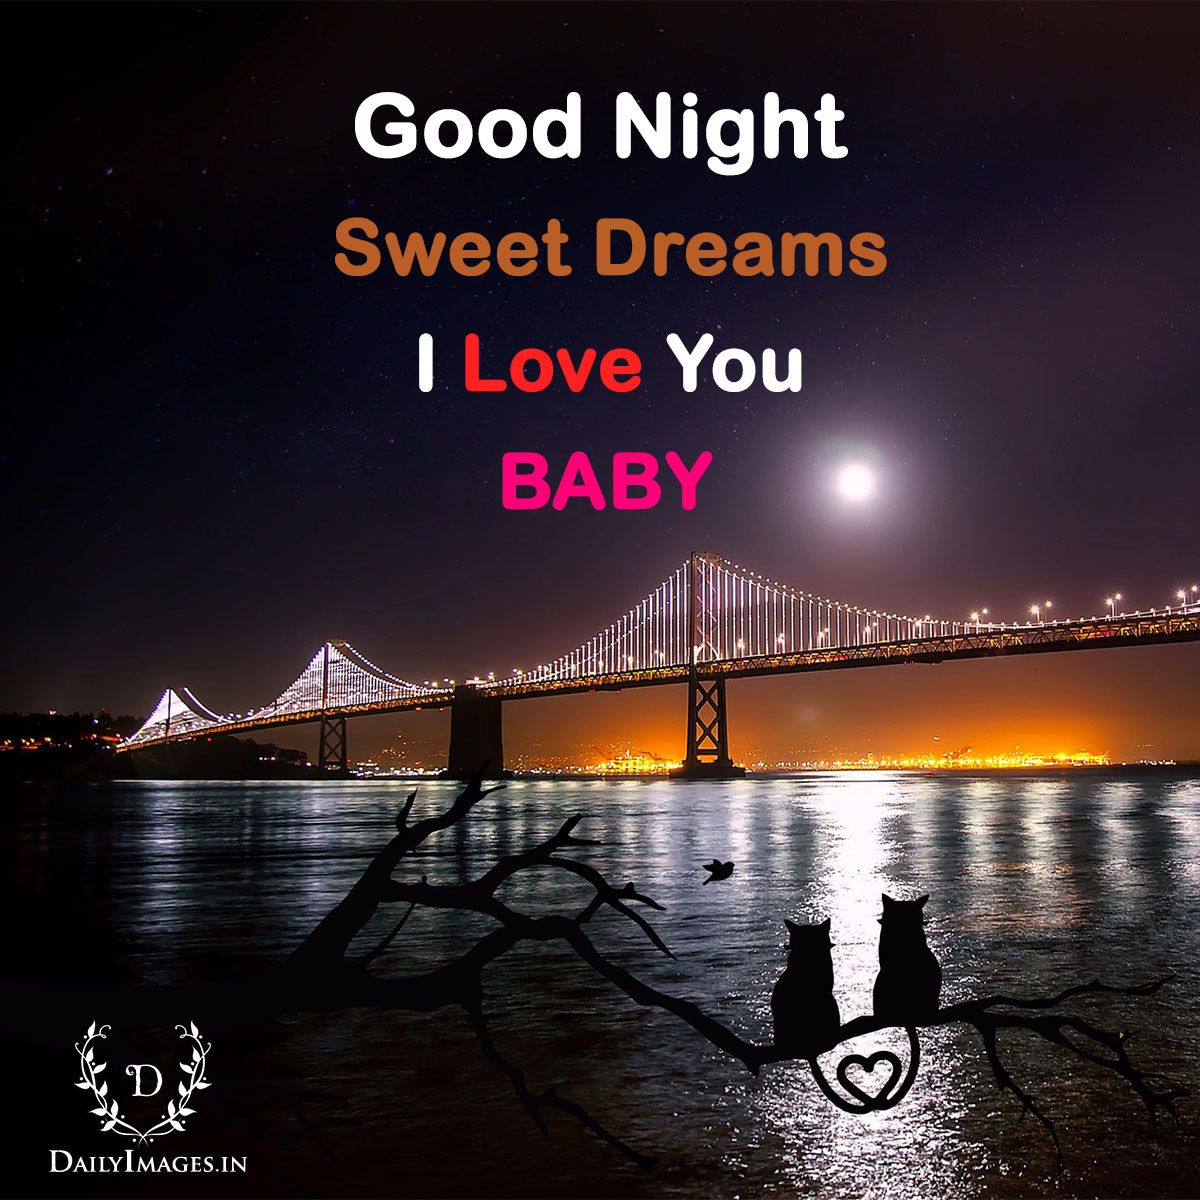 Good Night Sweet Dreams I Love You Baby Goodnight Quotes